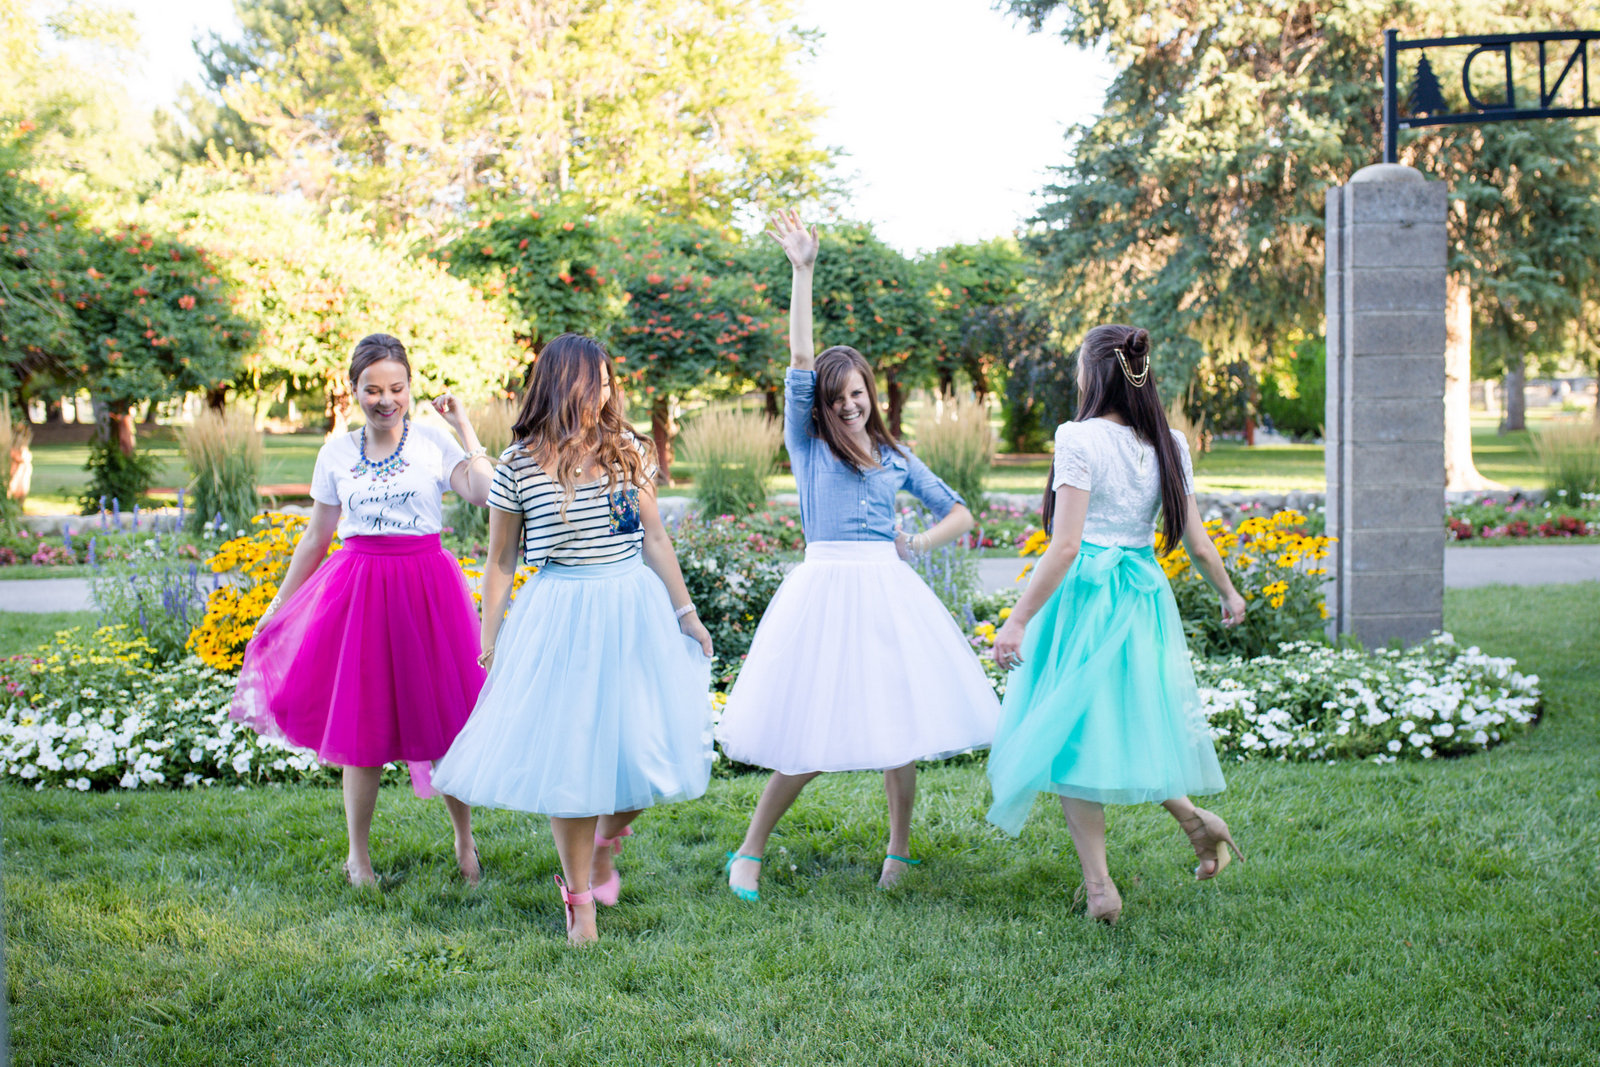 Girls dancing in tulle skirts